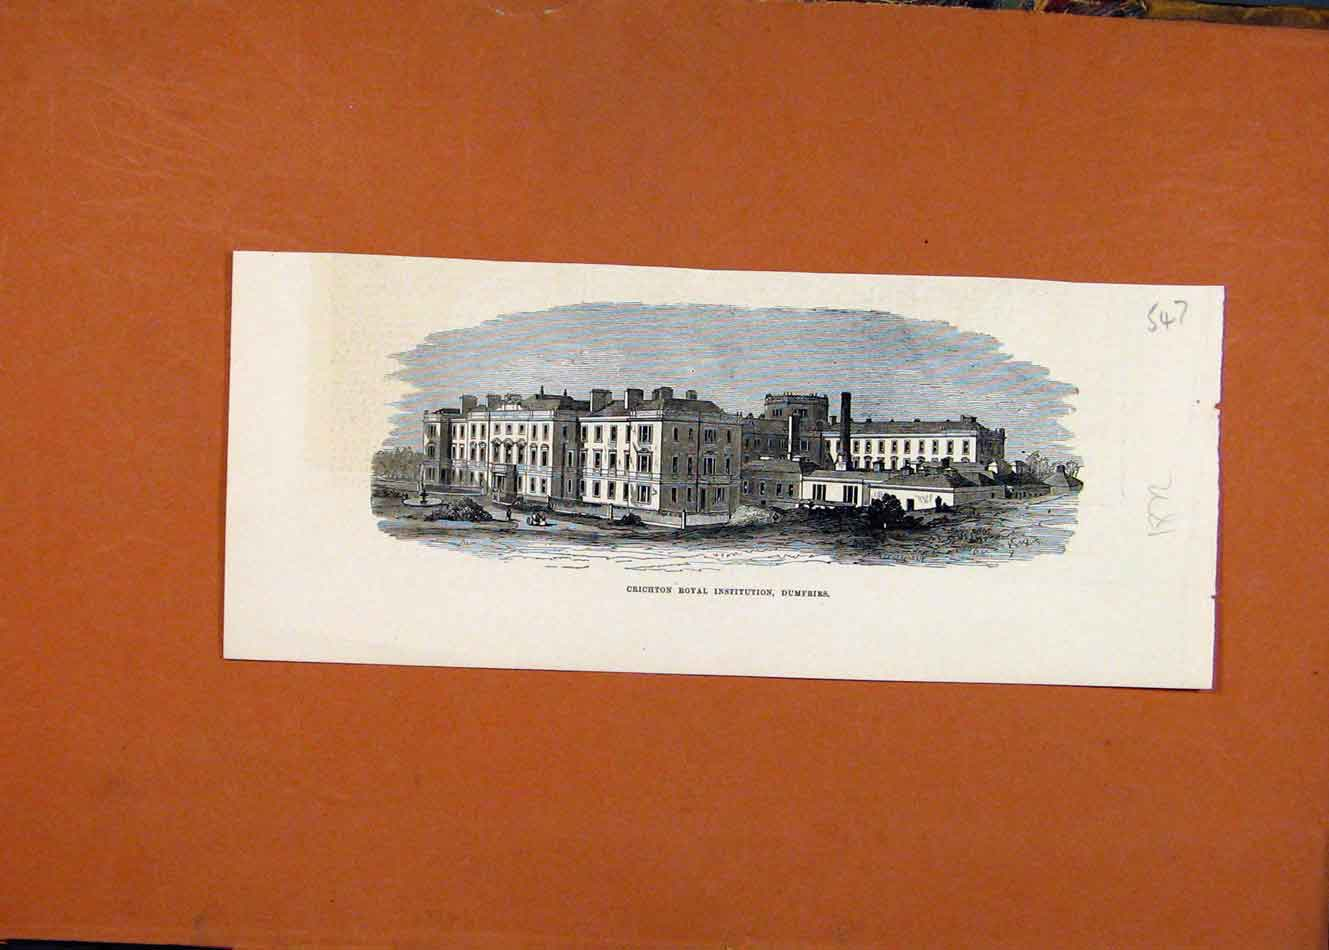 Print Crichton Royal Institution Dumfries C1872 London News 478260 Old Original